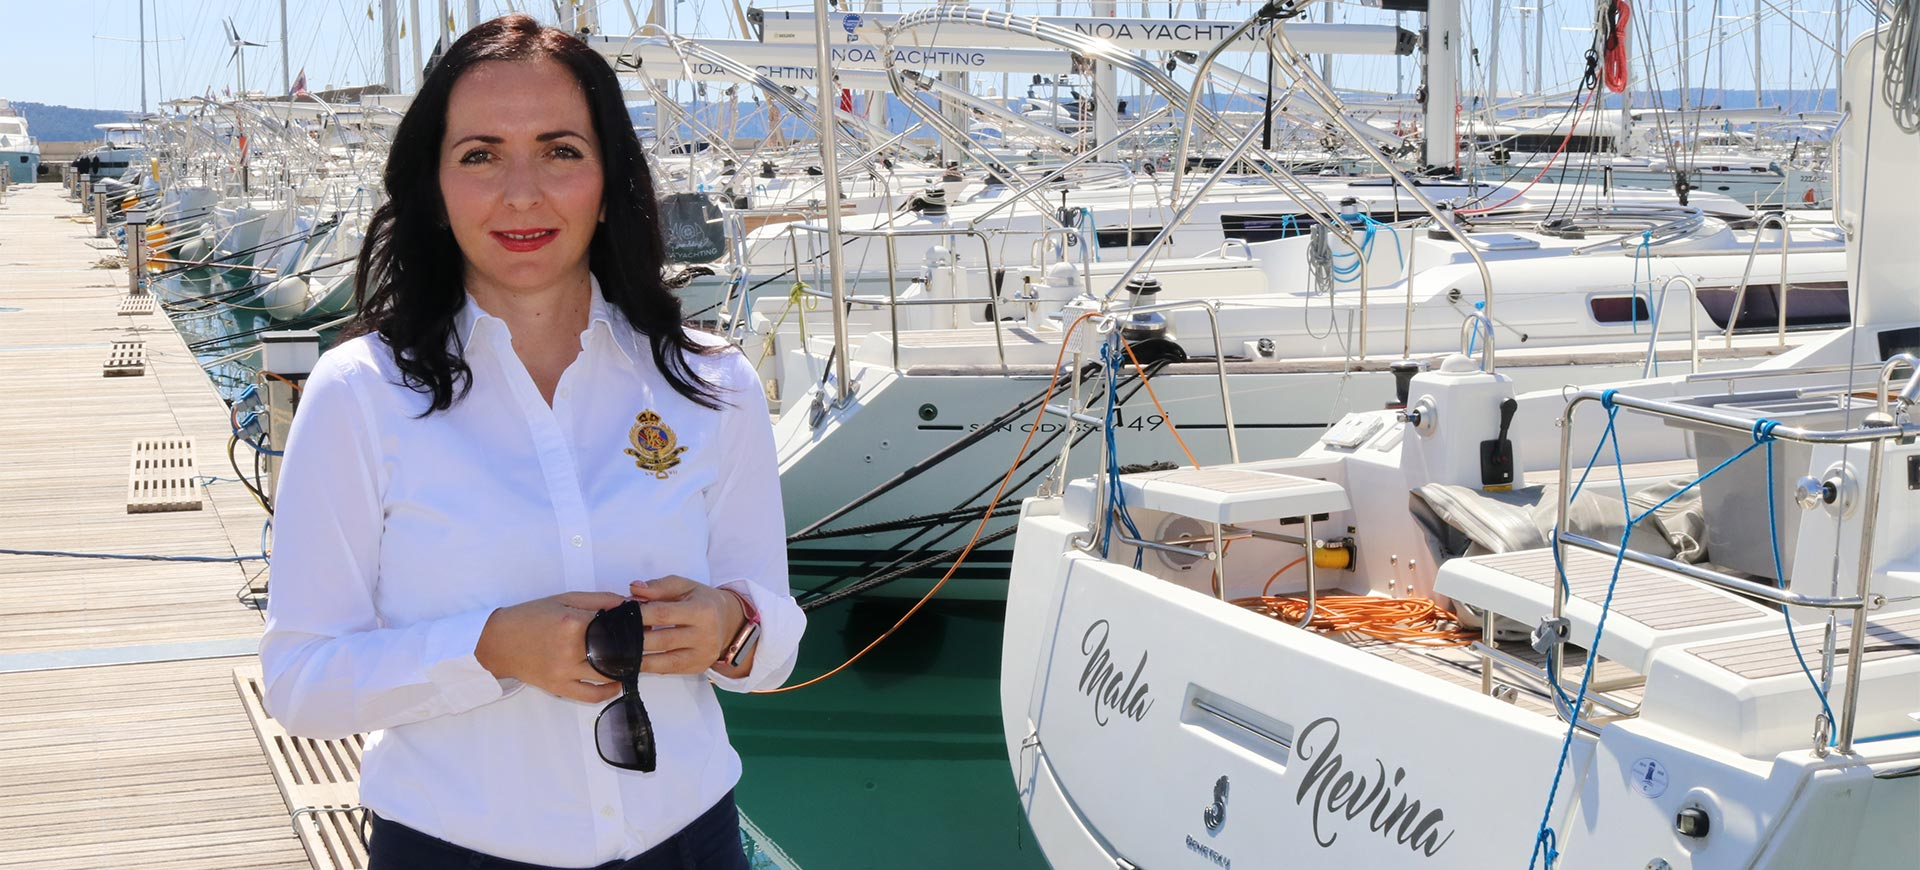 Noa Yachting Charter Management Program